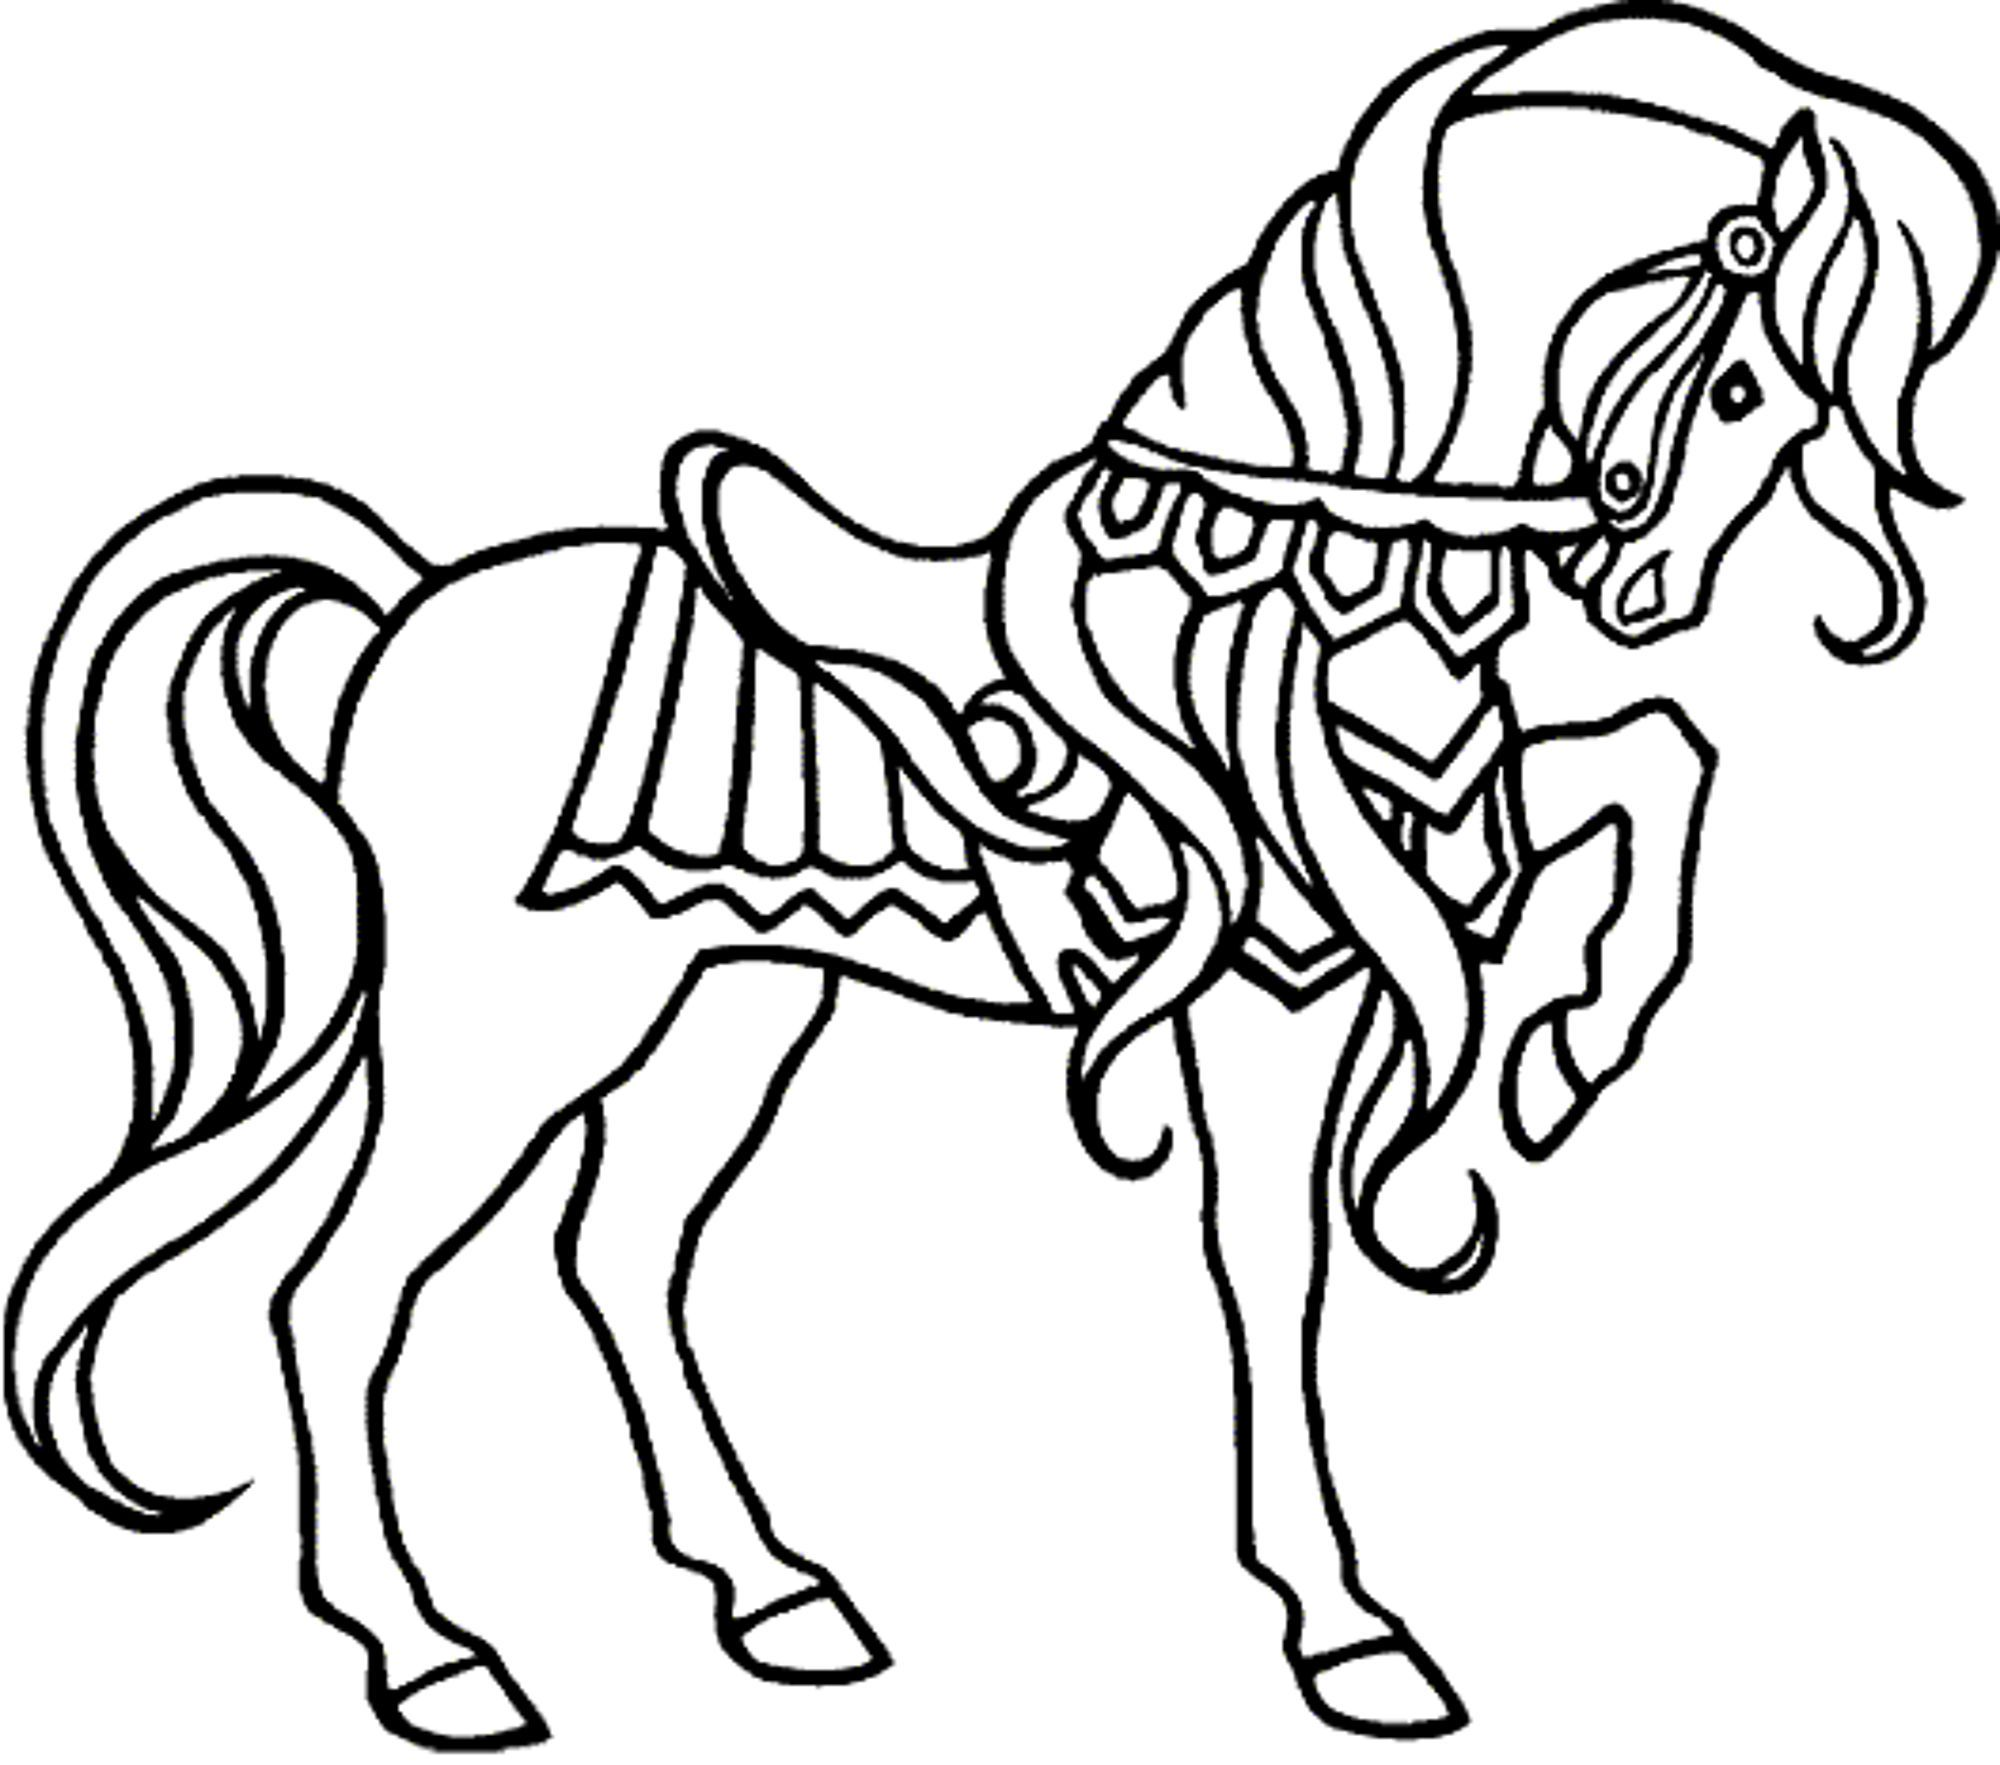 Free coloring horse pictures to print - Free Coloring Pages Of Horses Printable Kids Colouring Pages